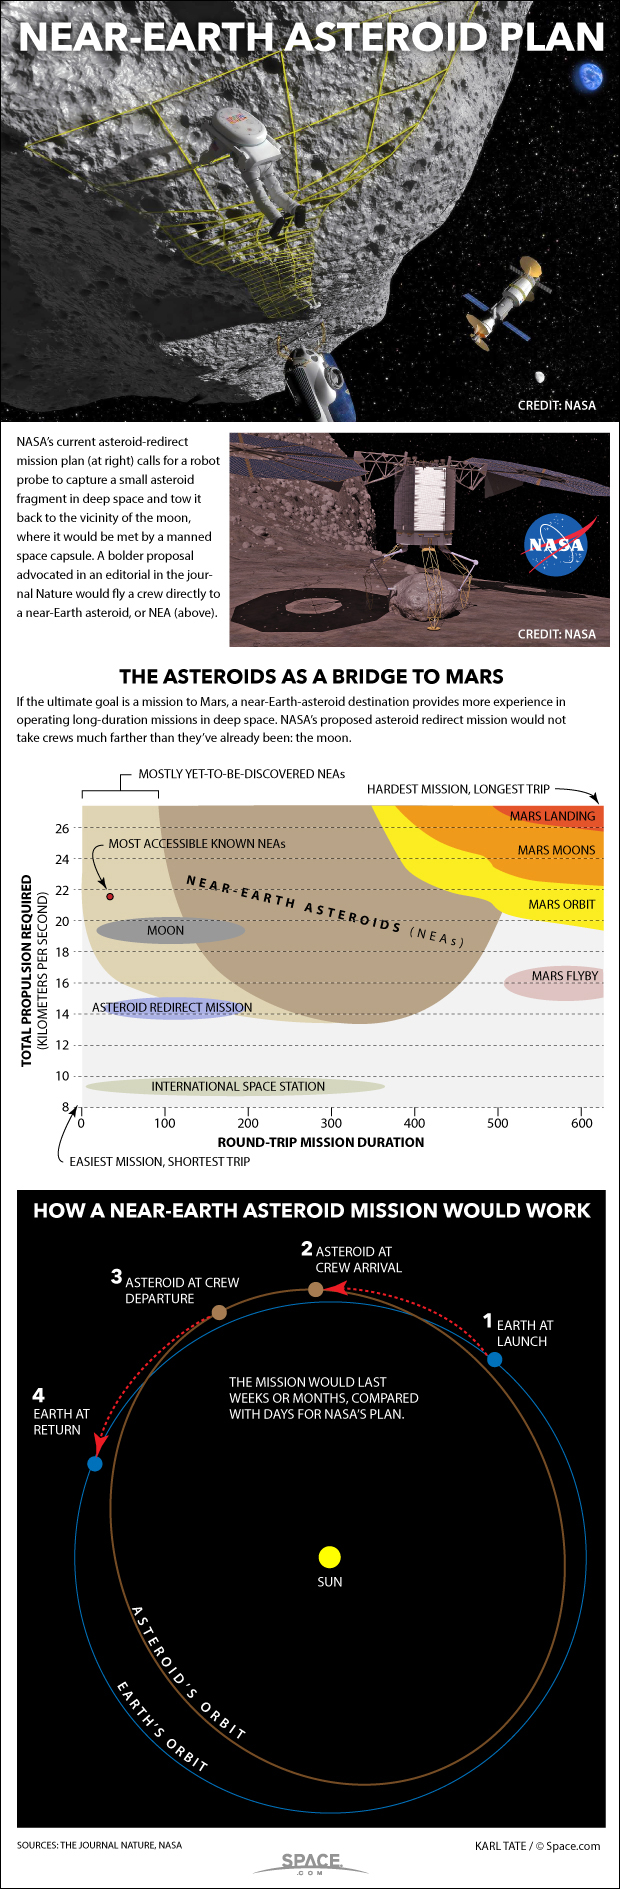 How Sending Humans to an Asteroid Would Work (Infographic)